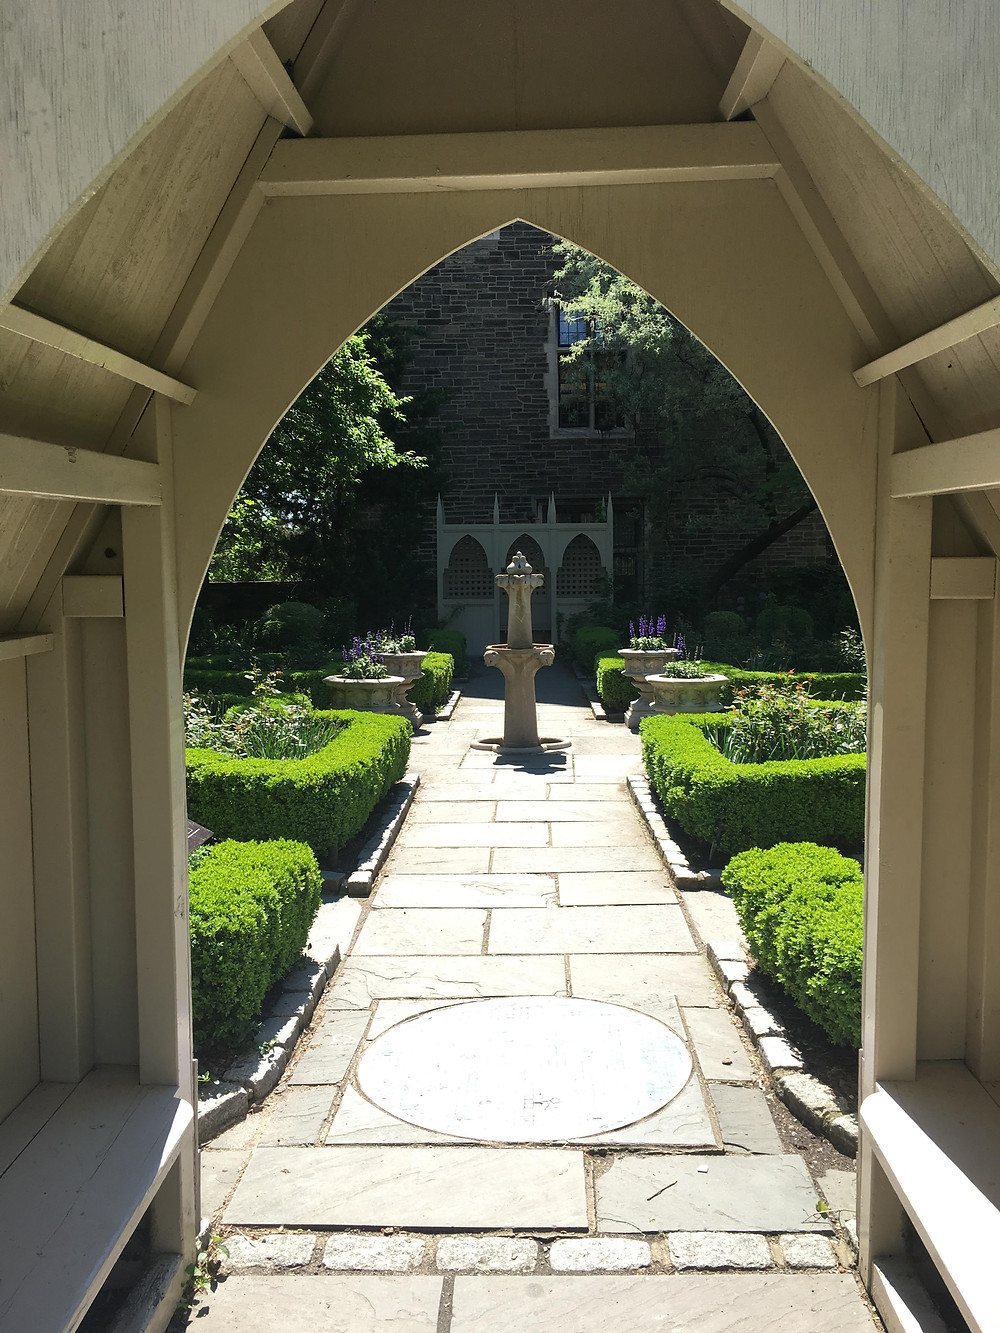 The arched entrance leading to the Biblical Garden at the Cathedral of Saint John the Divine